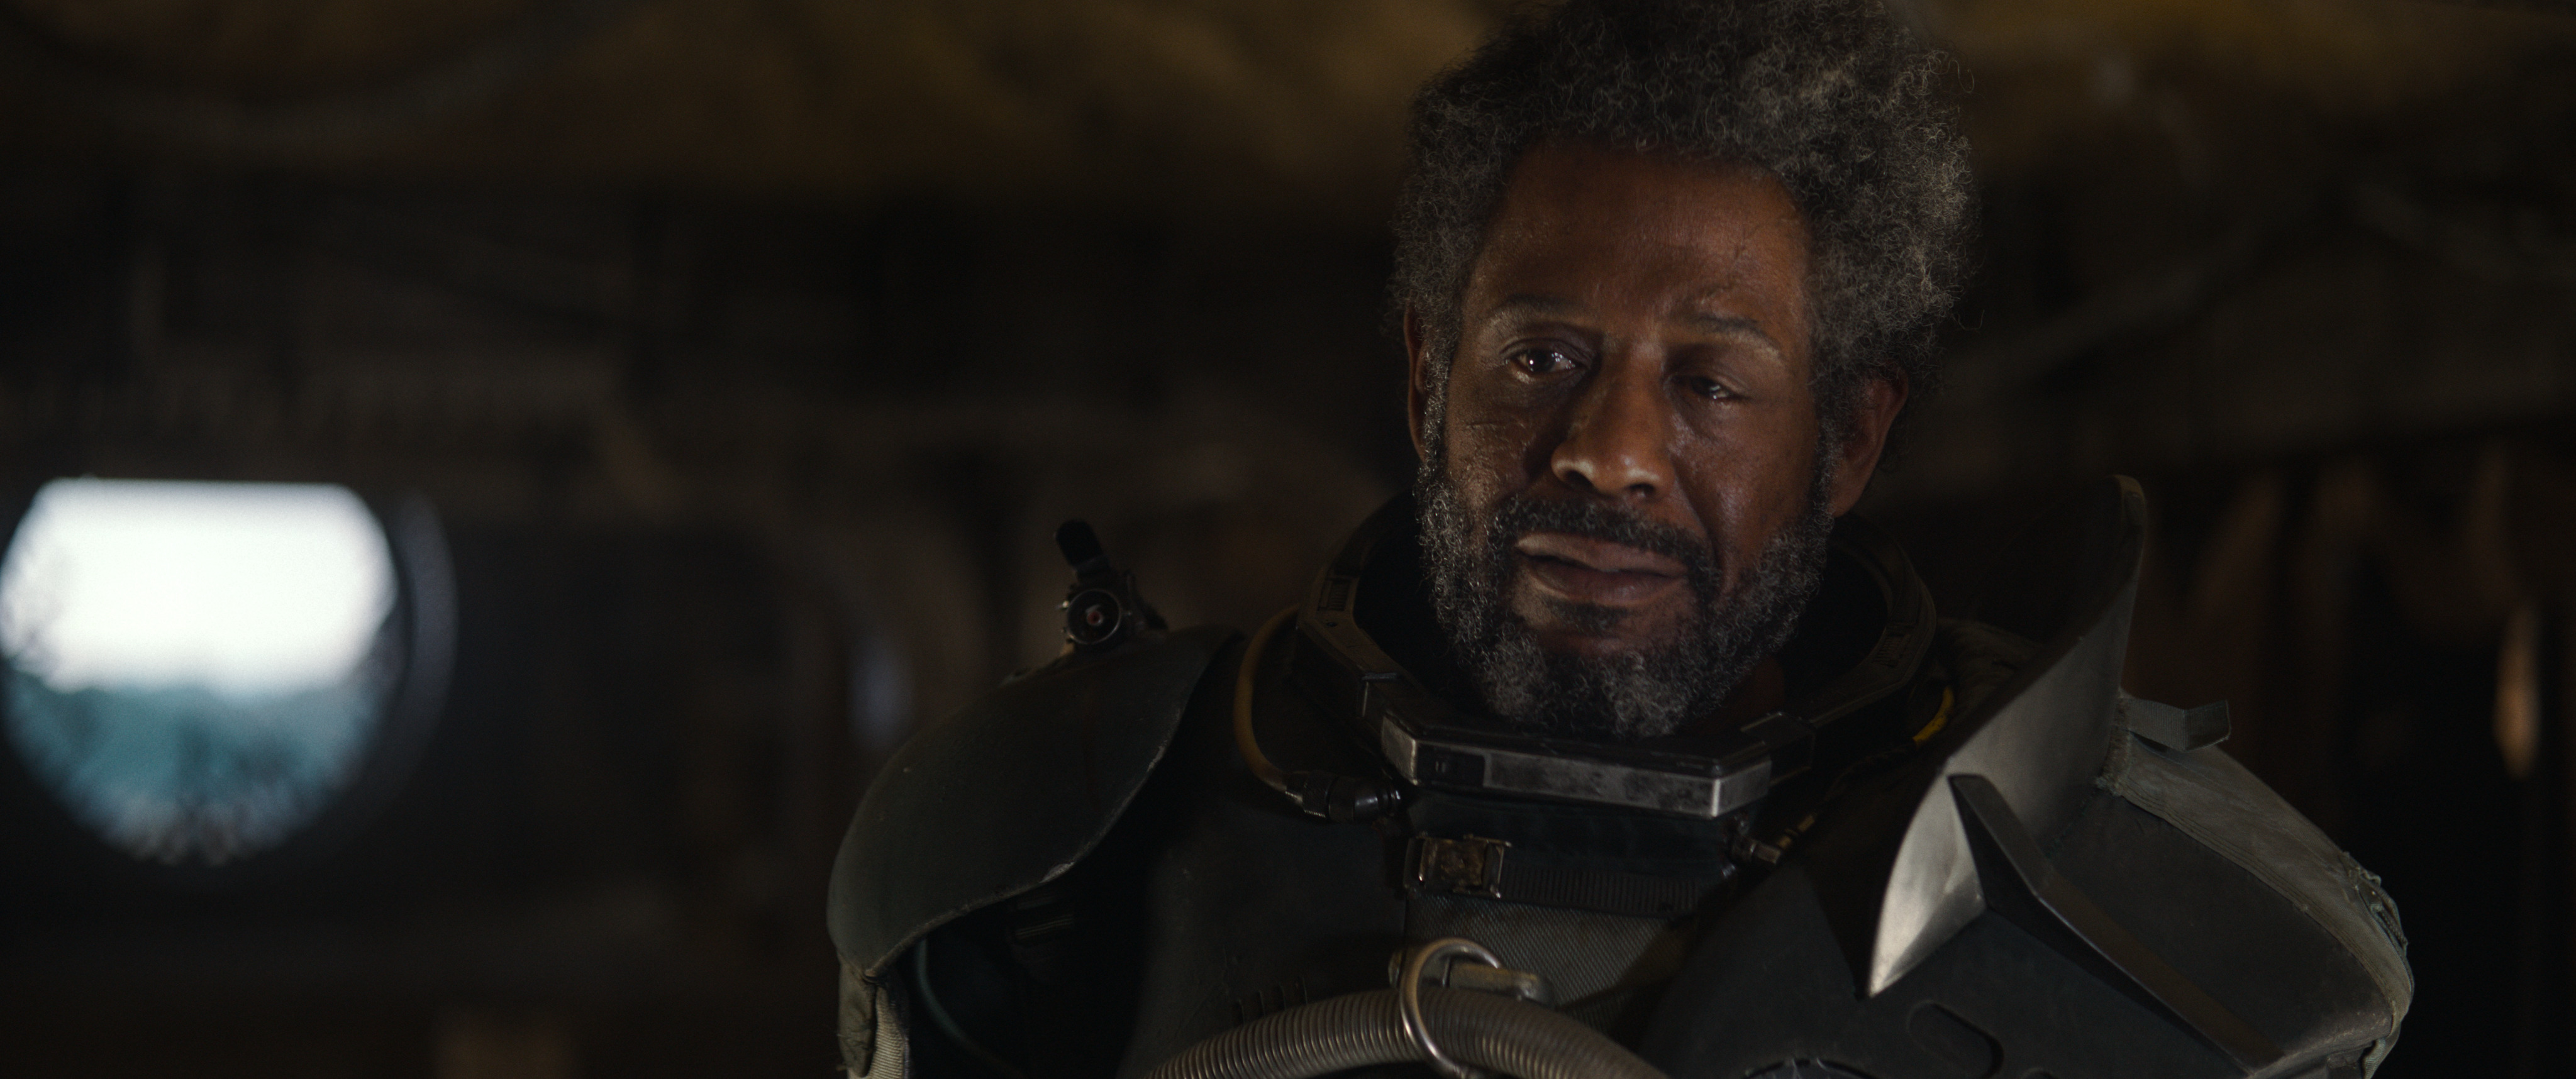 Rogue One: A Star Wars Story..Saw Gerrera (Forest Whitaker)..Ph: Film Frame/Lucasfilm..©Lucasfilm LFL 2016.